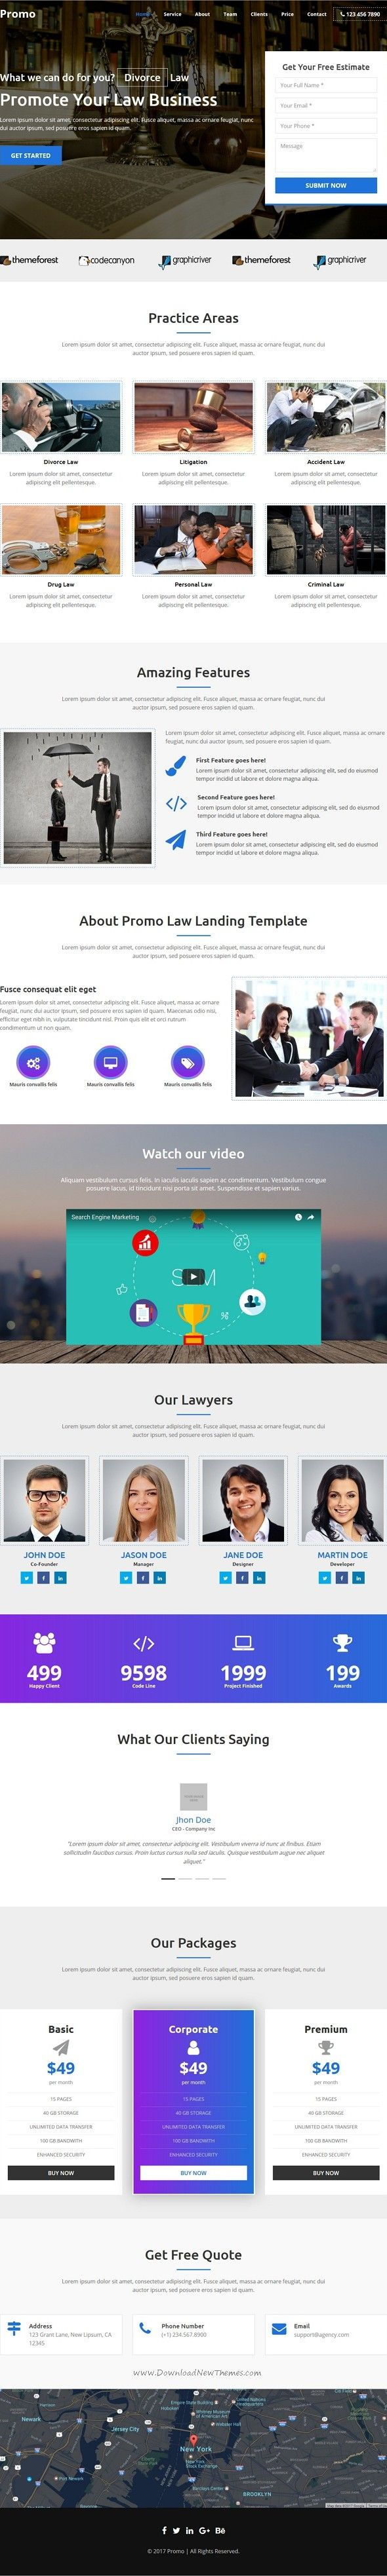 The 22 best Lawyer Marketing images on Pinterest | Lawyer marketing ...